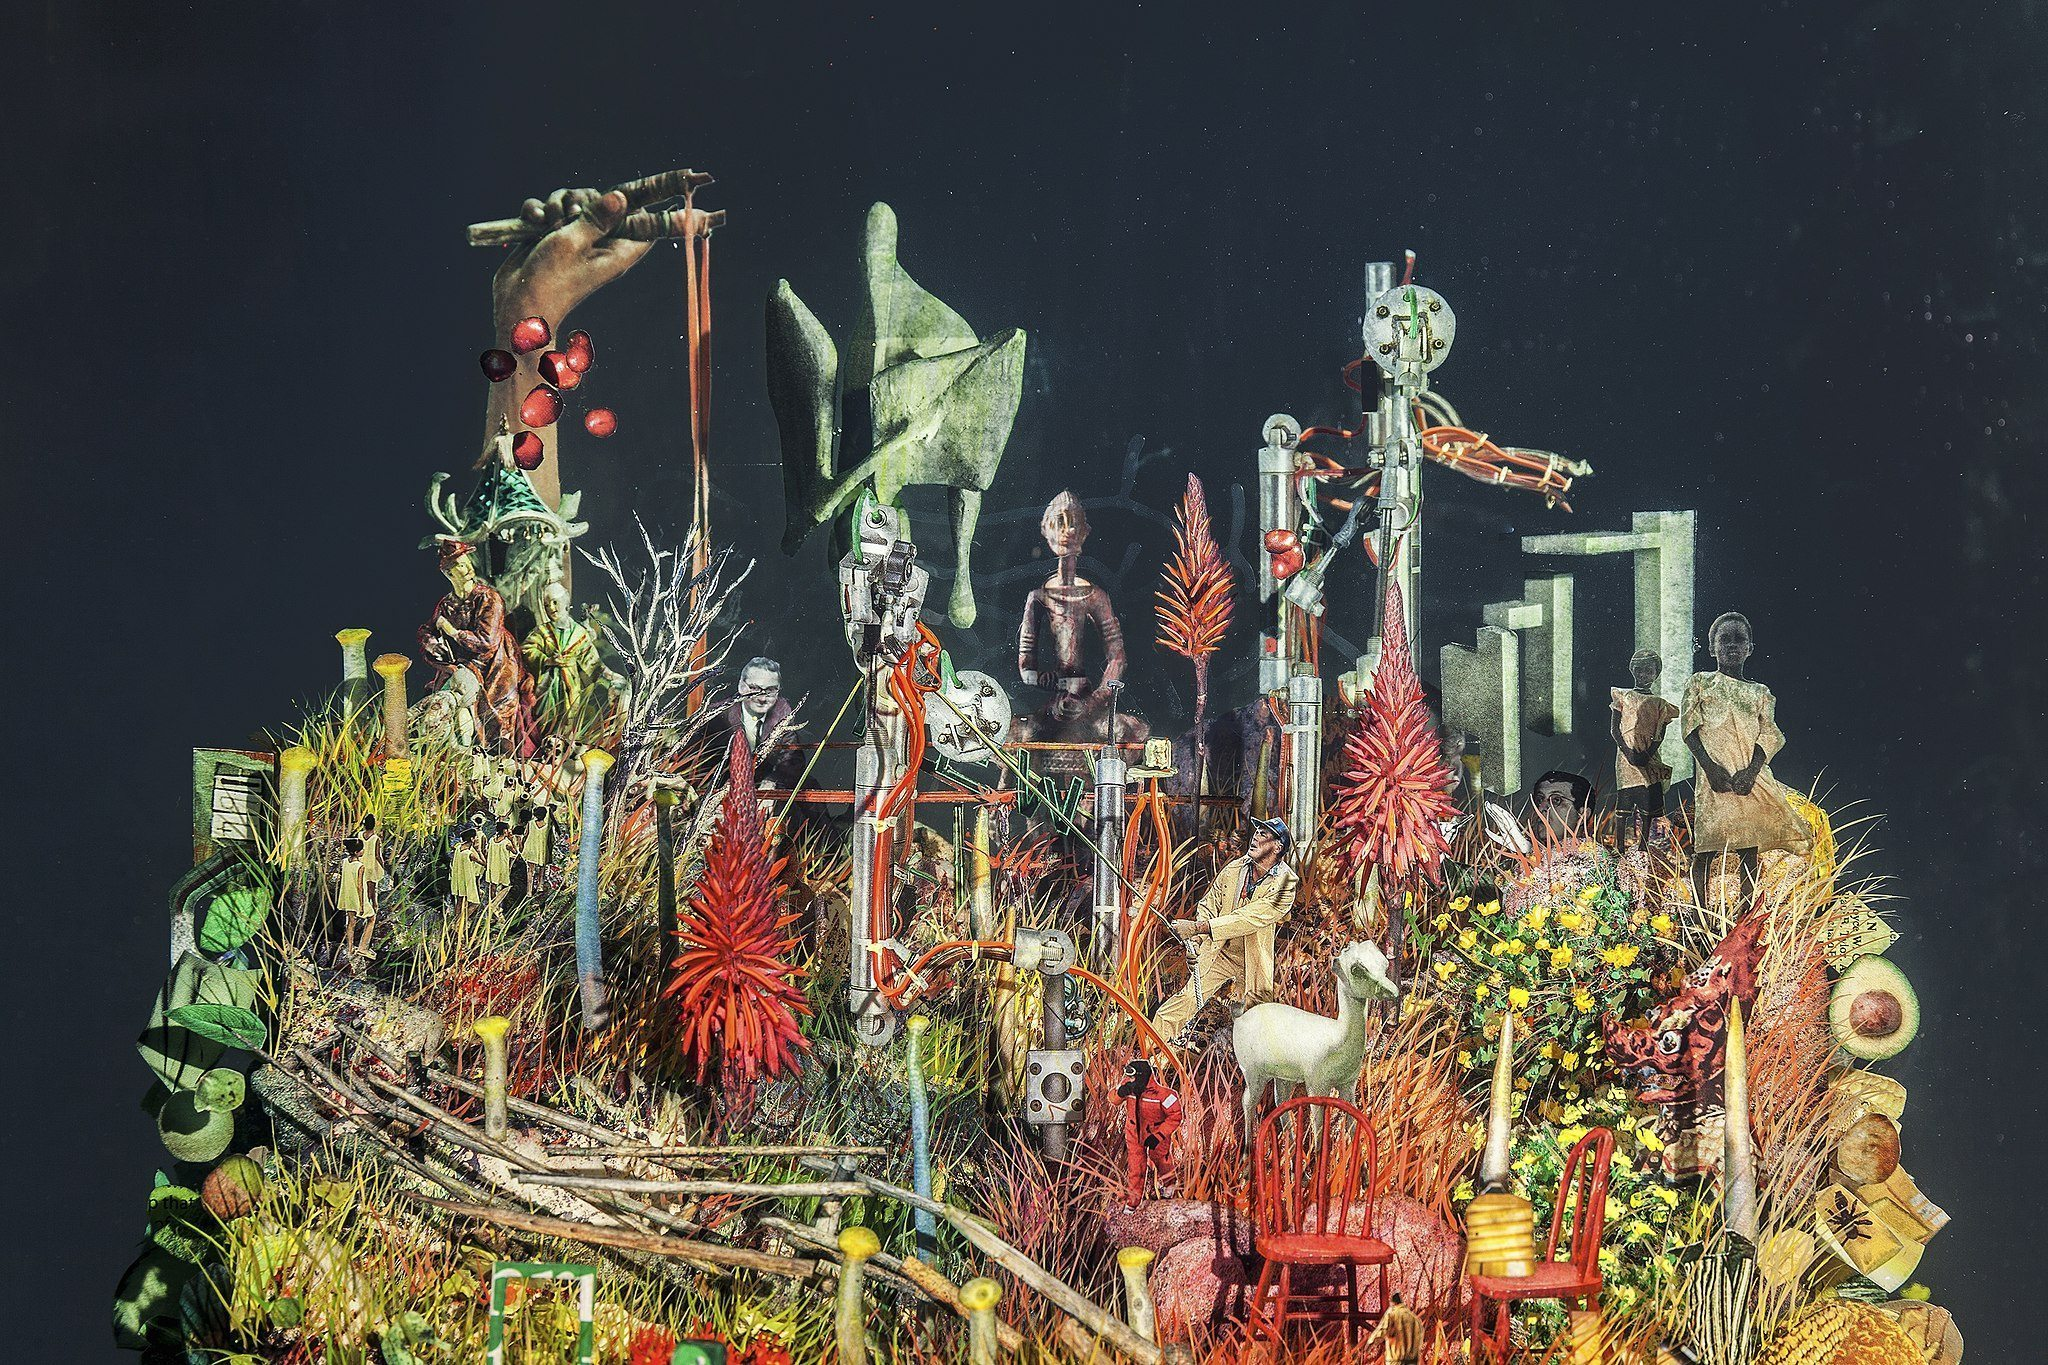 Image: Close up of Dustin Yellin's collage sculpture Psychogeography 66